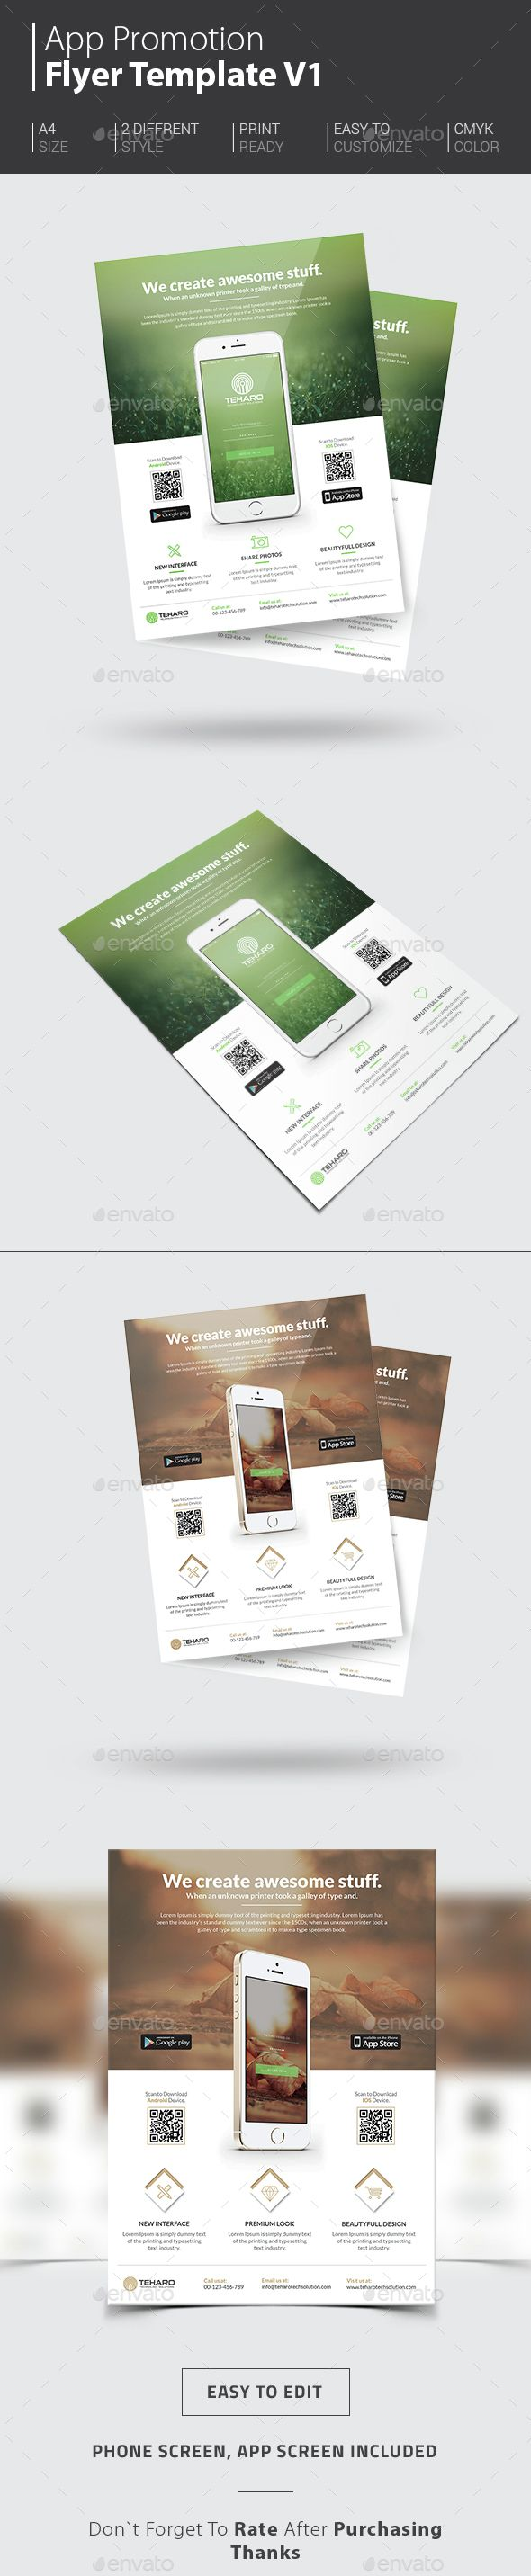 Poster design app - App Promotion Flyer